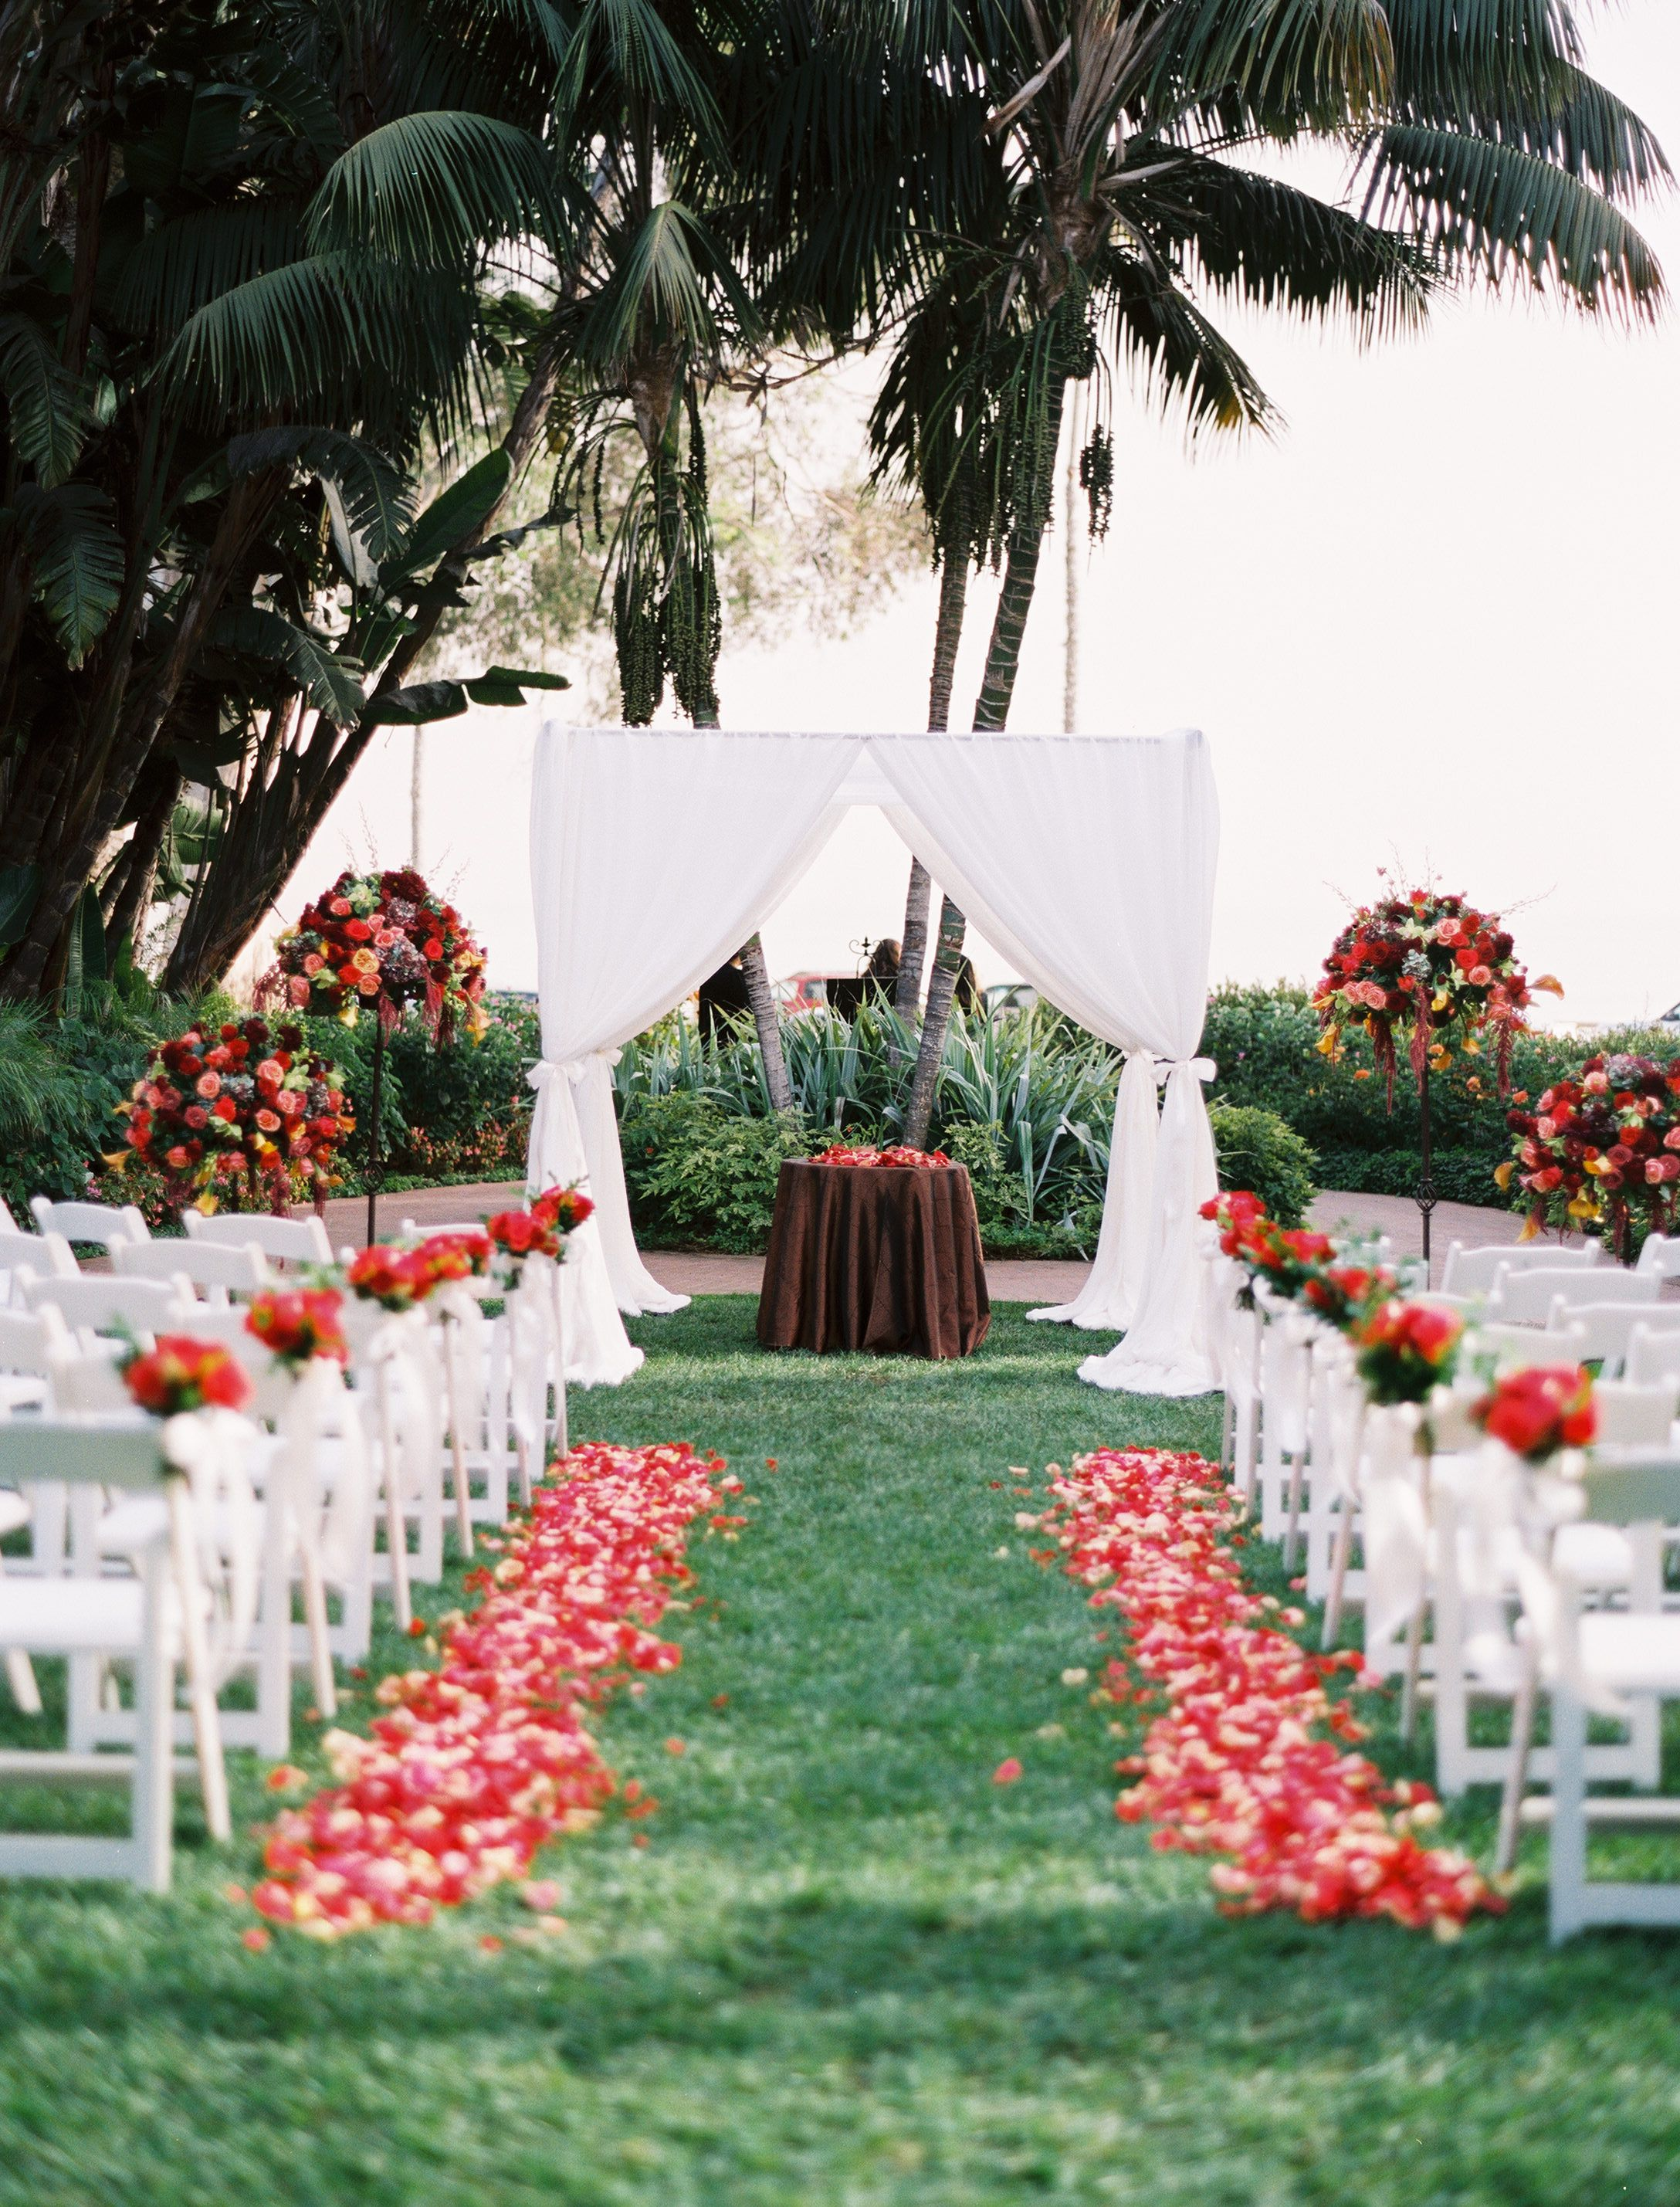 Wedding garden chairs - Bright Red Blooms And Crisp White Chairs Popped Against A Grass Aisle At This Outdoor